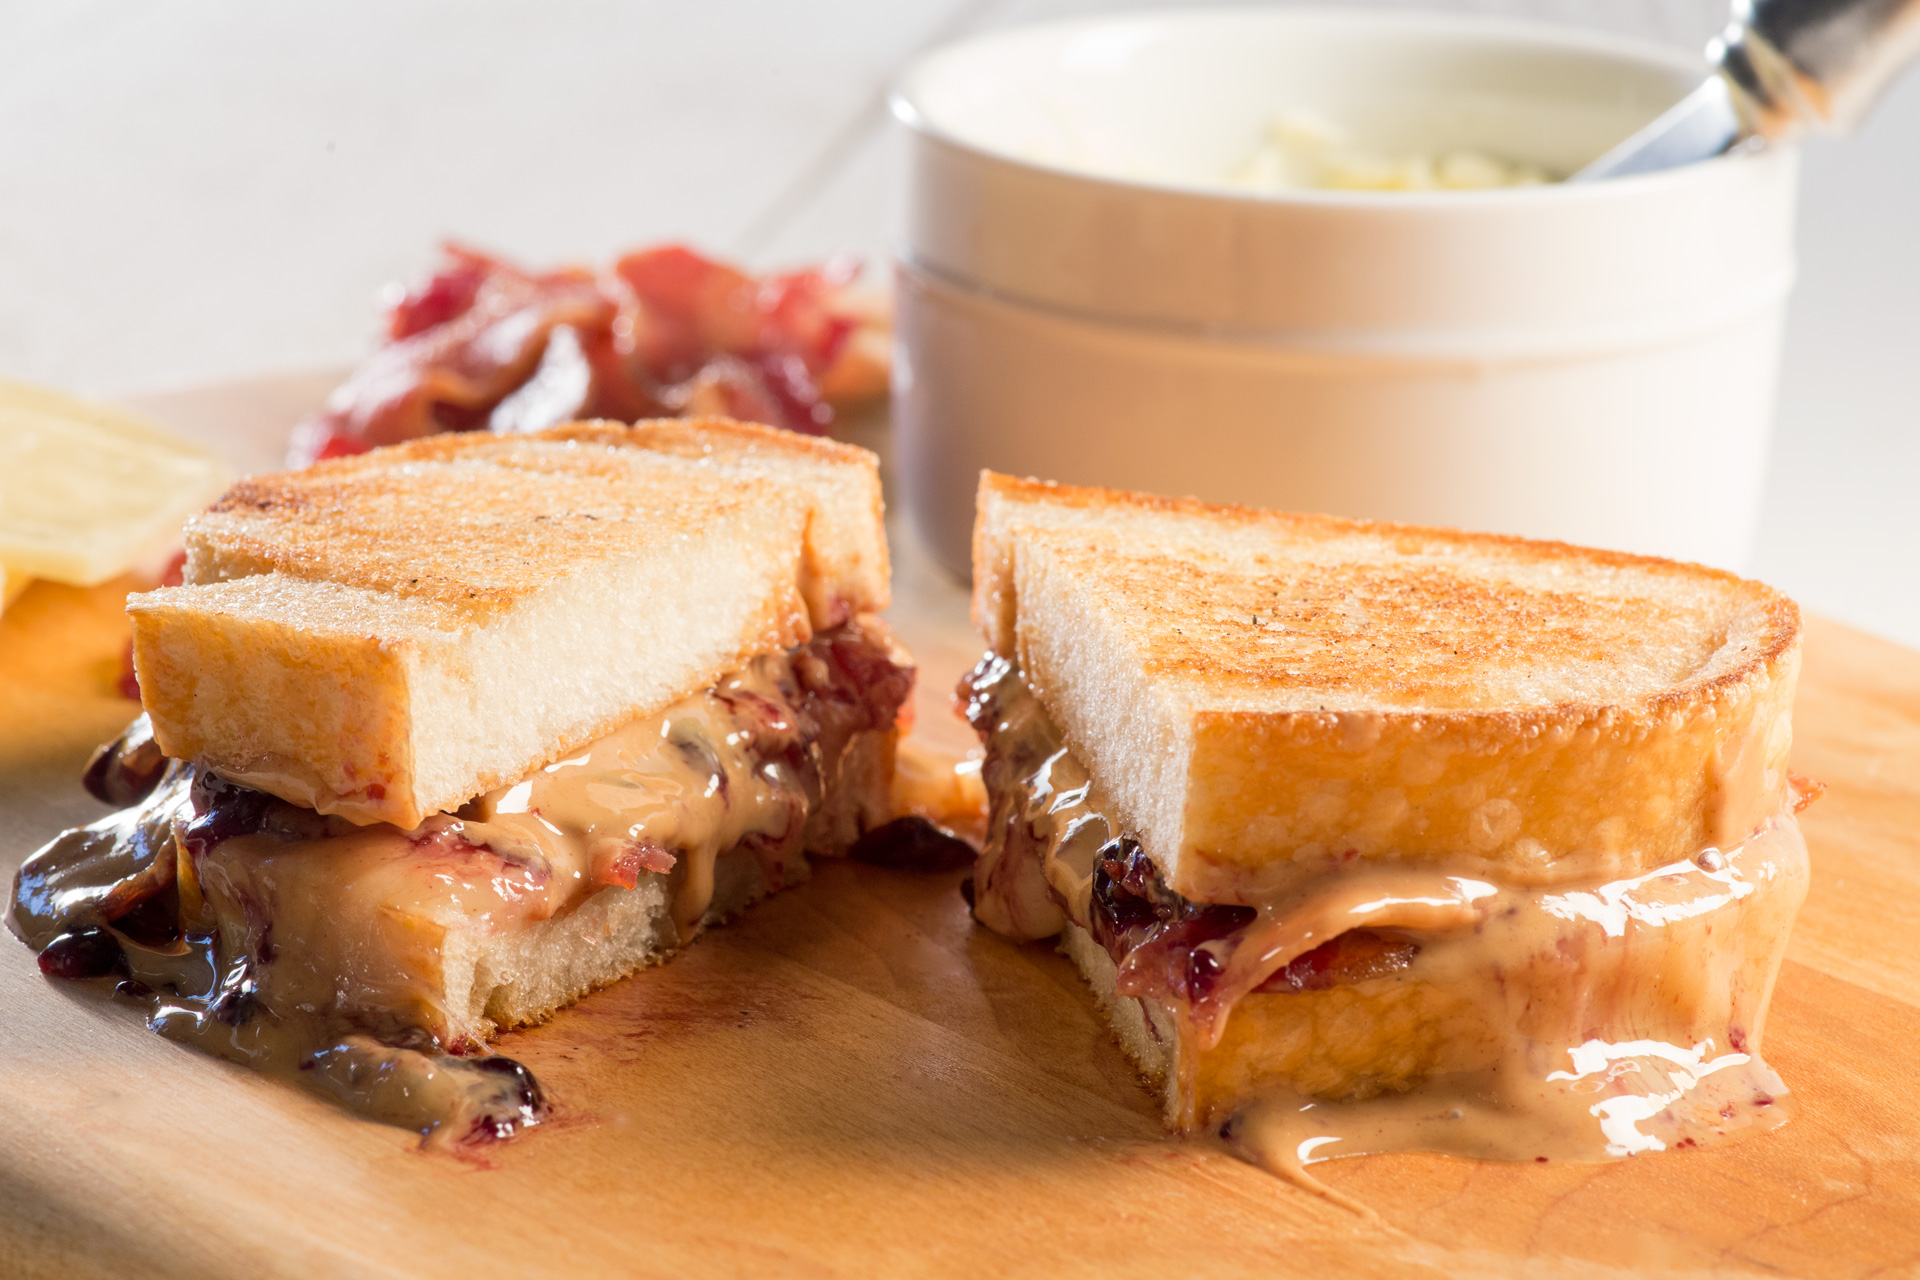 PB&J Grilled Cheese Sandwich with Bacon